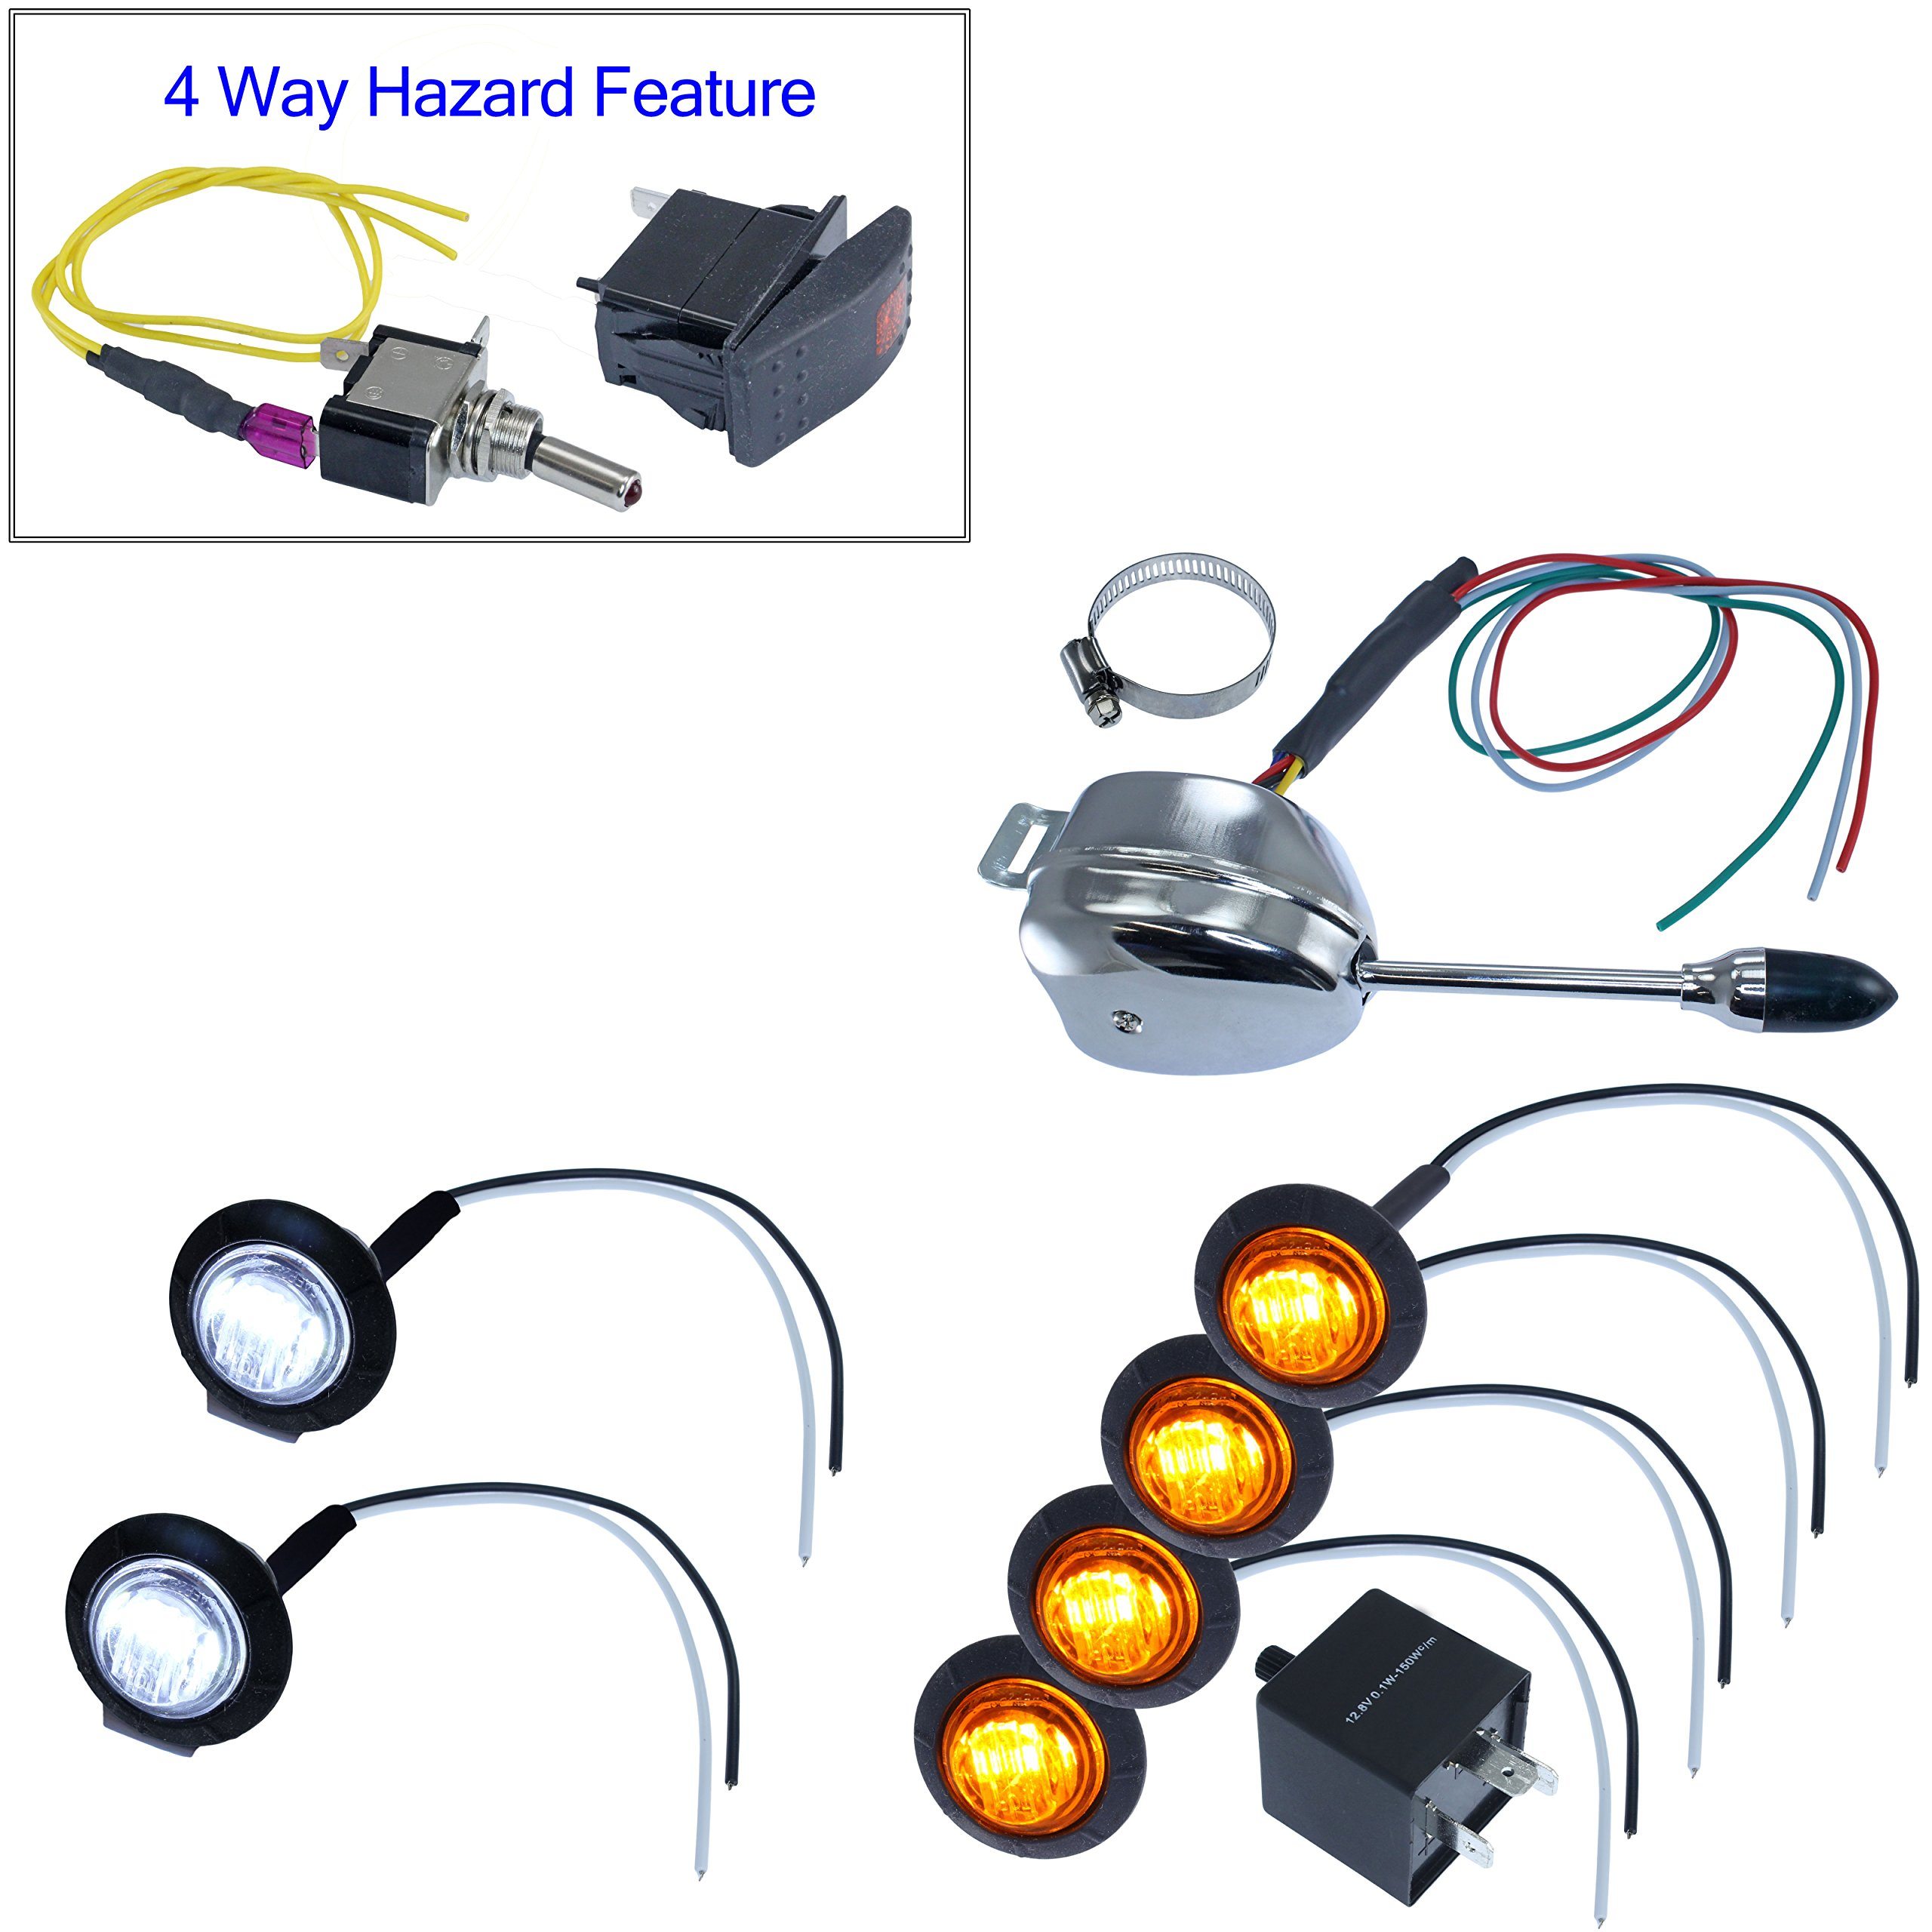 Turn Signal Kits (No Install Kit & No Horn, Lever Switch) by Advance MCS Electronics